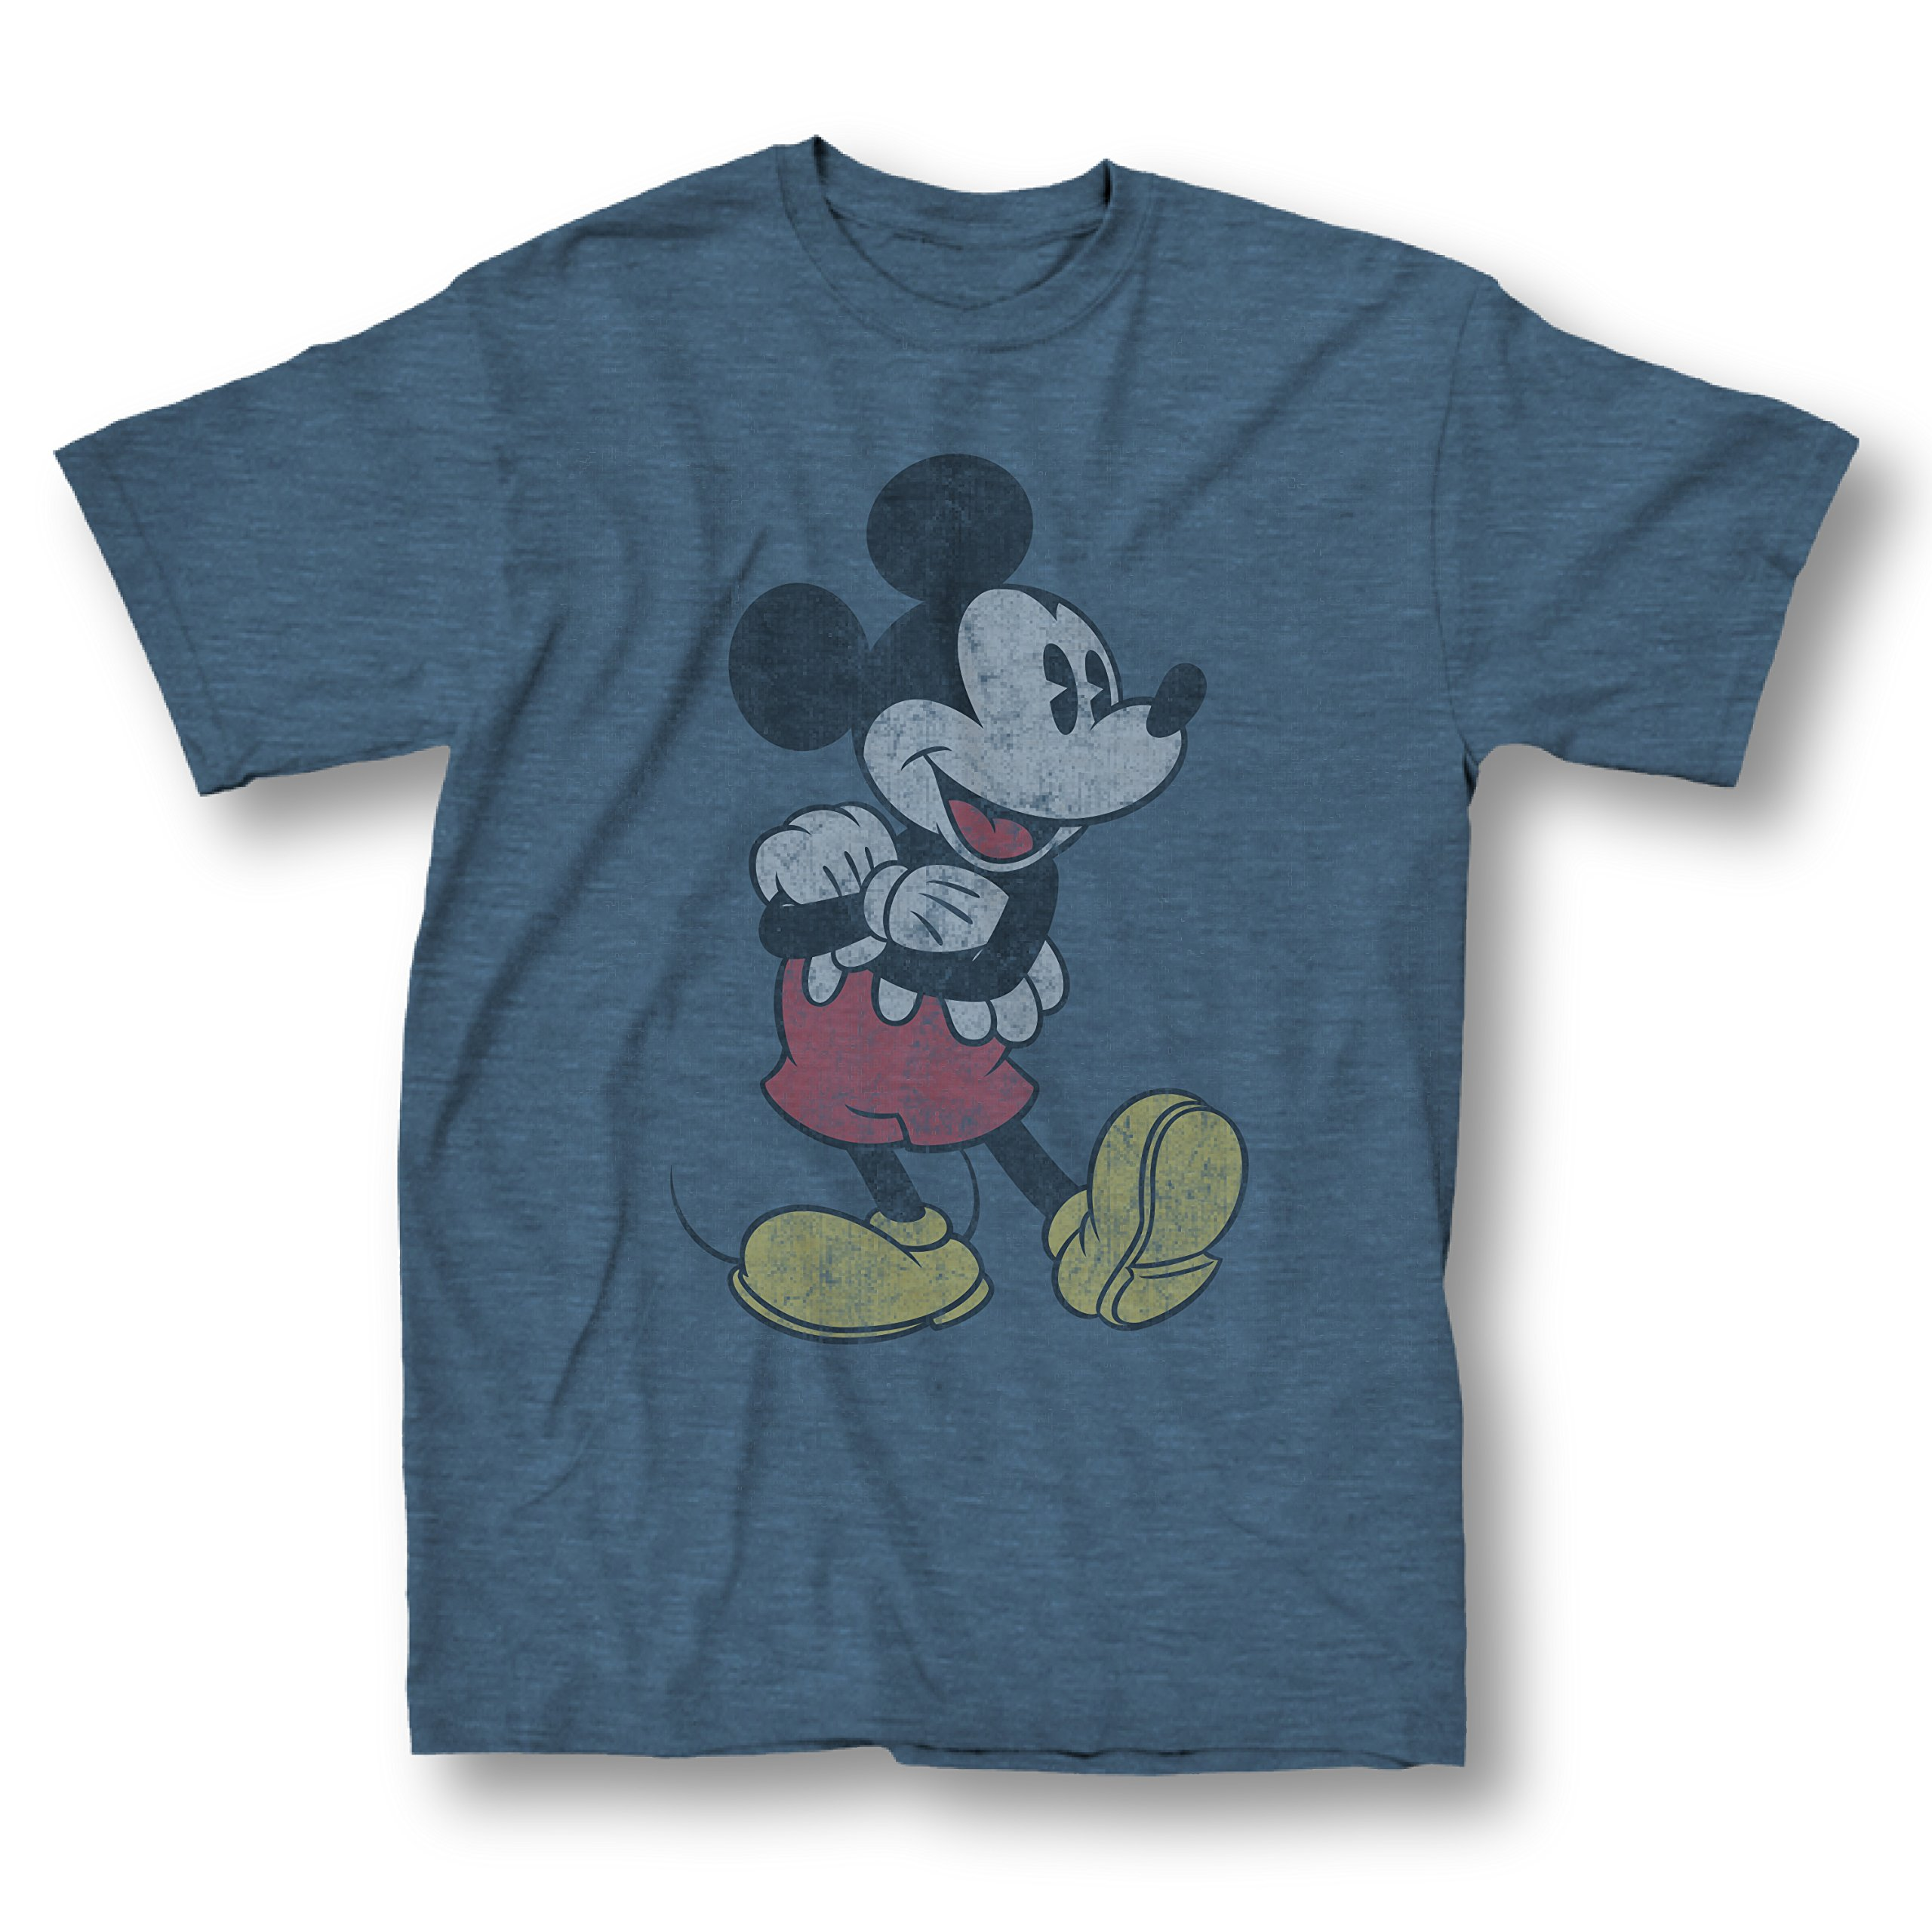 Mickey Mouse Arms Crossed T-shirt (Small, Heather Navy)